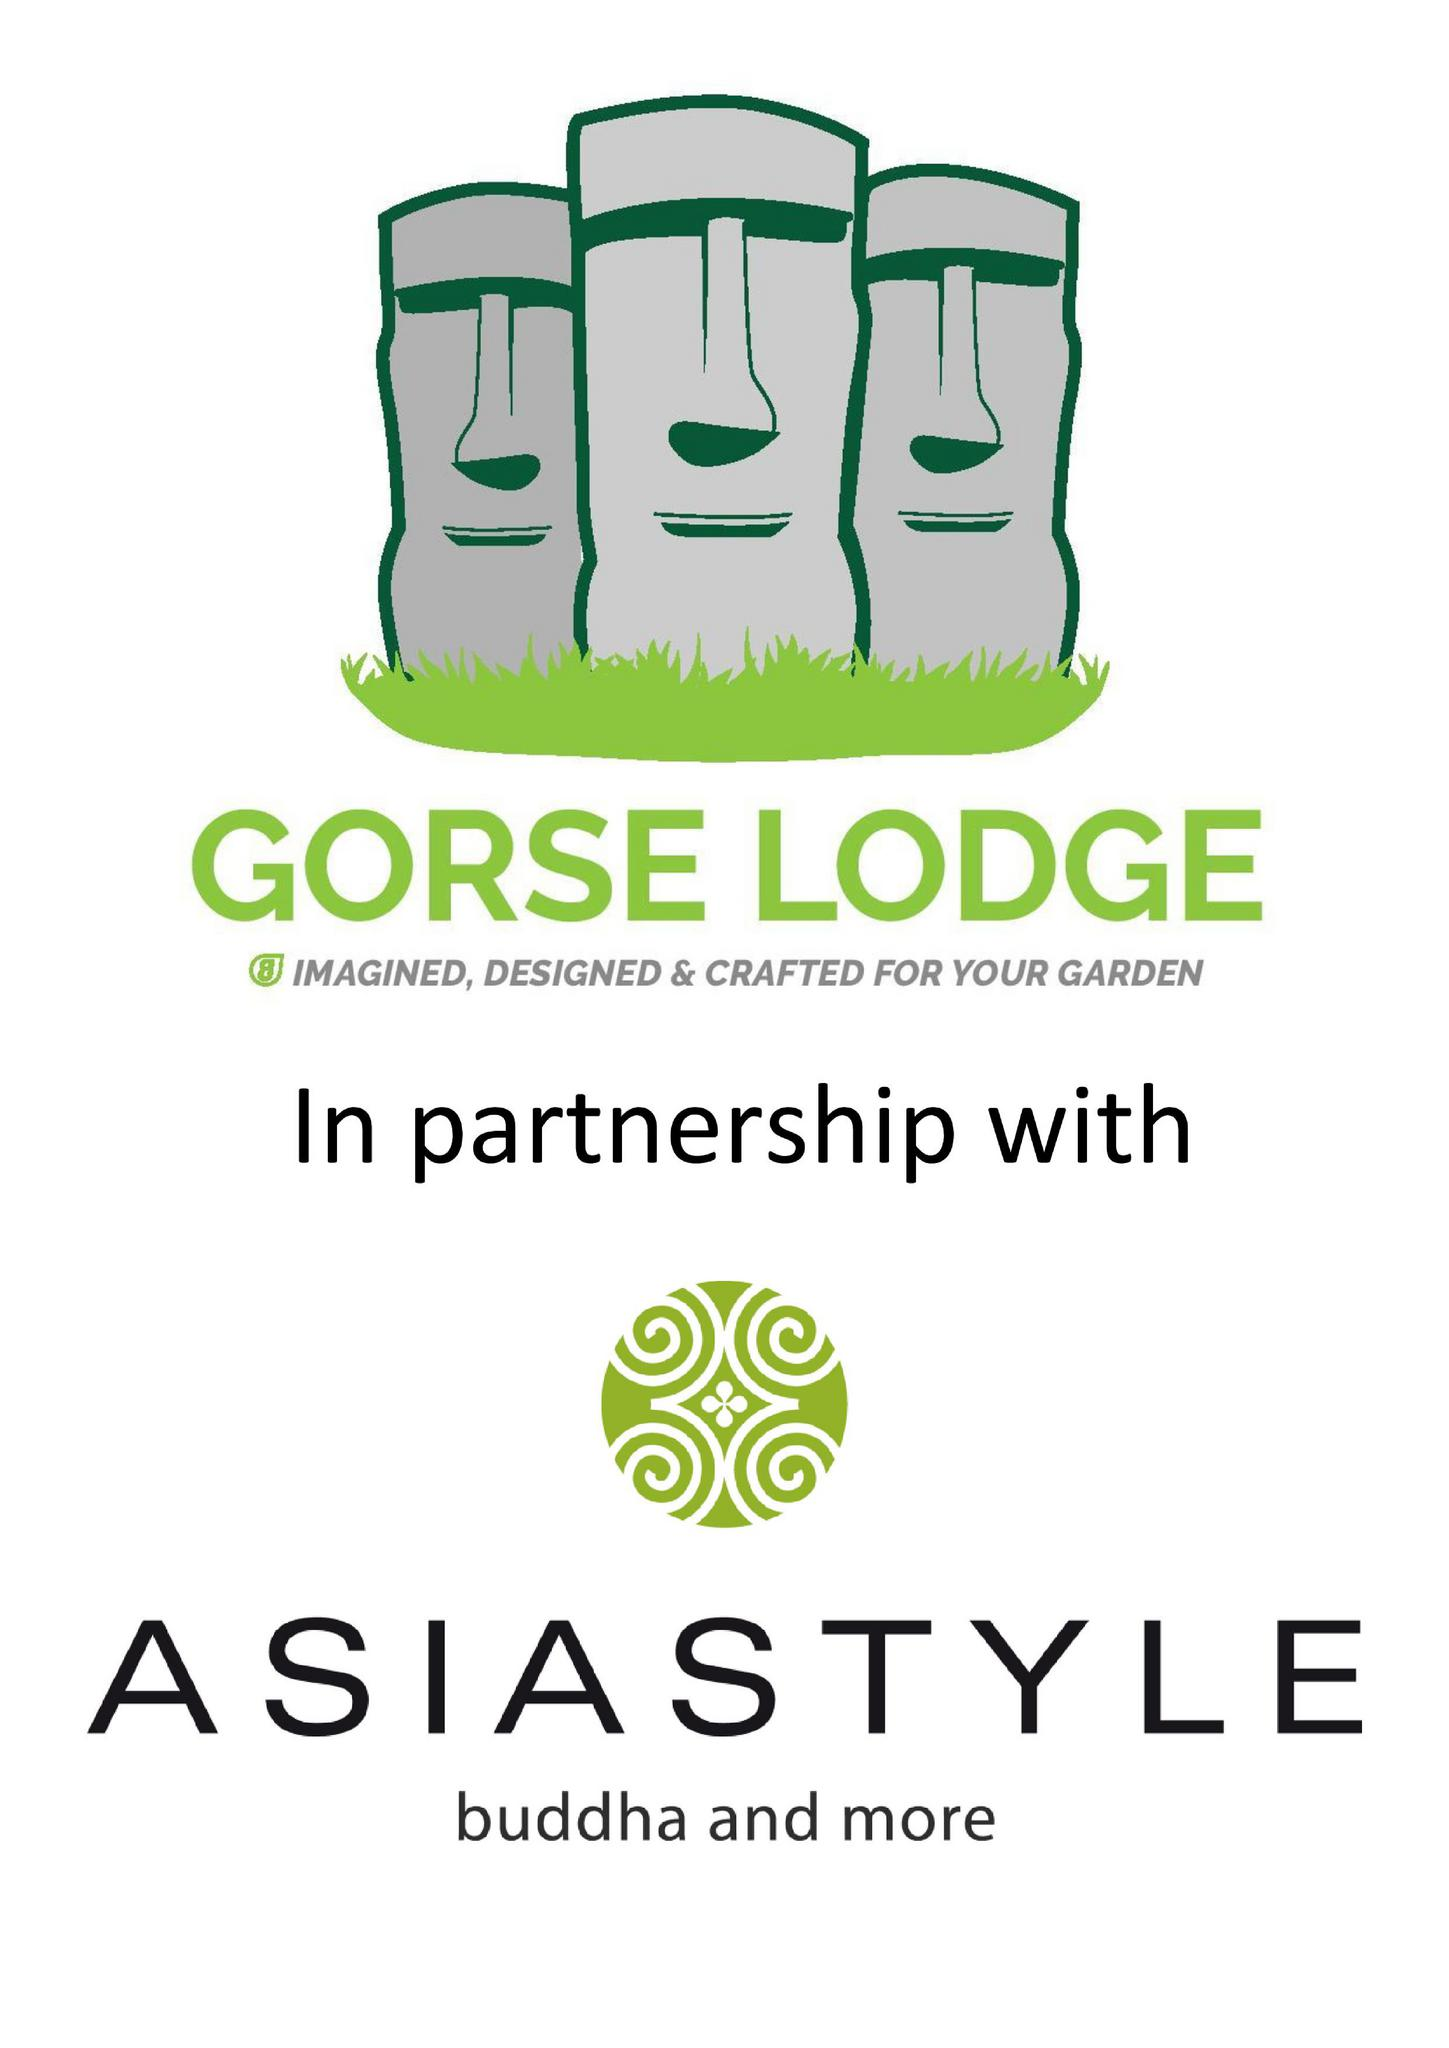 Gorse Lodge Ltd